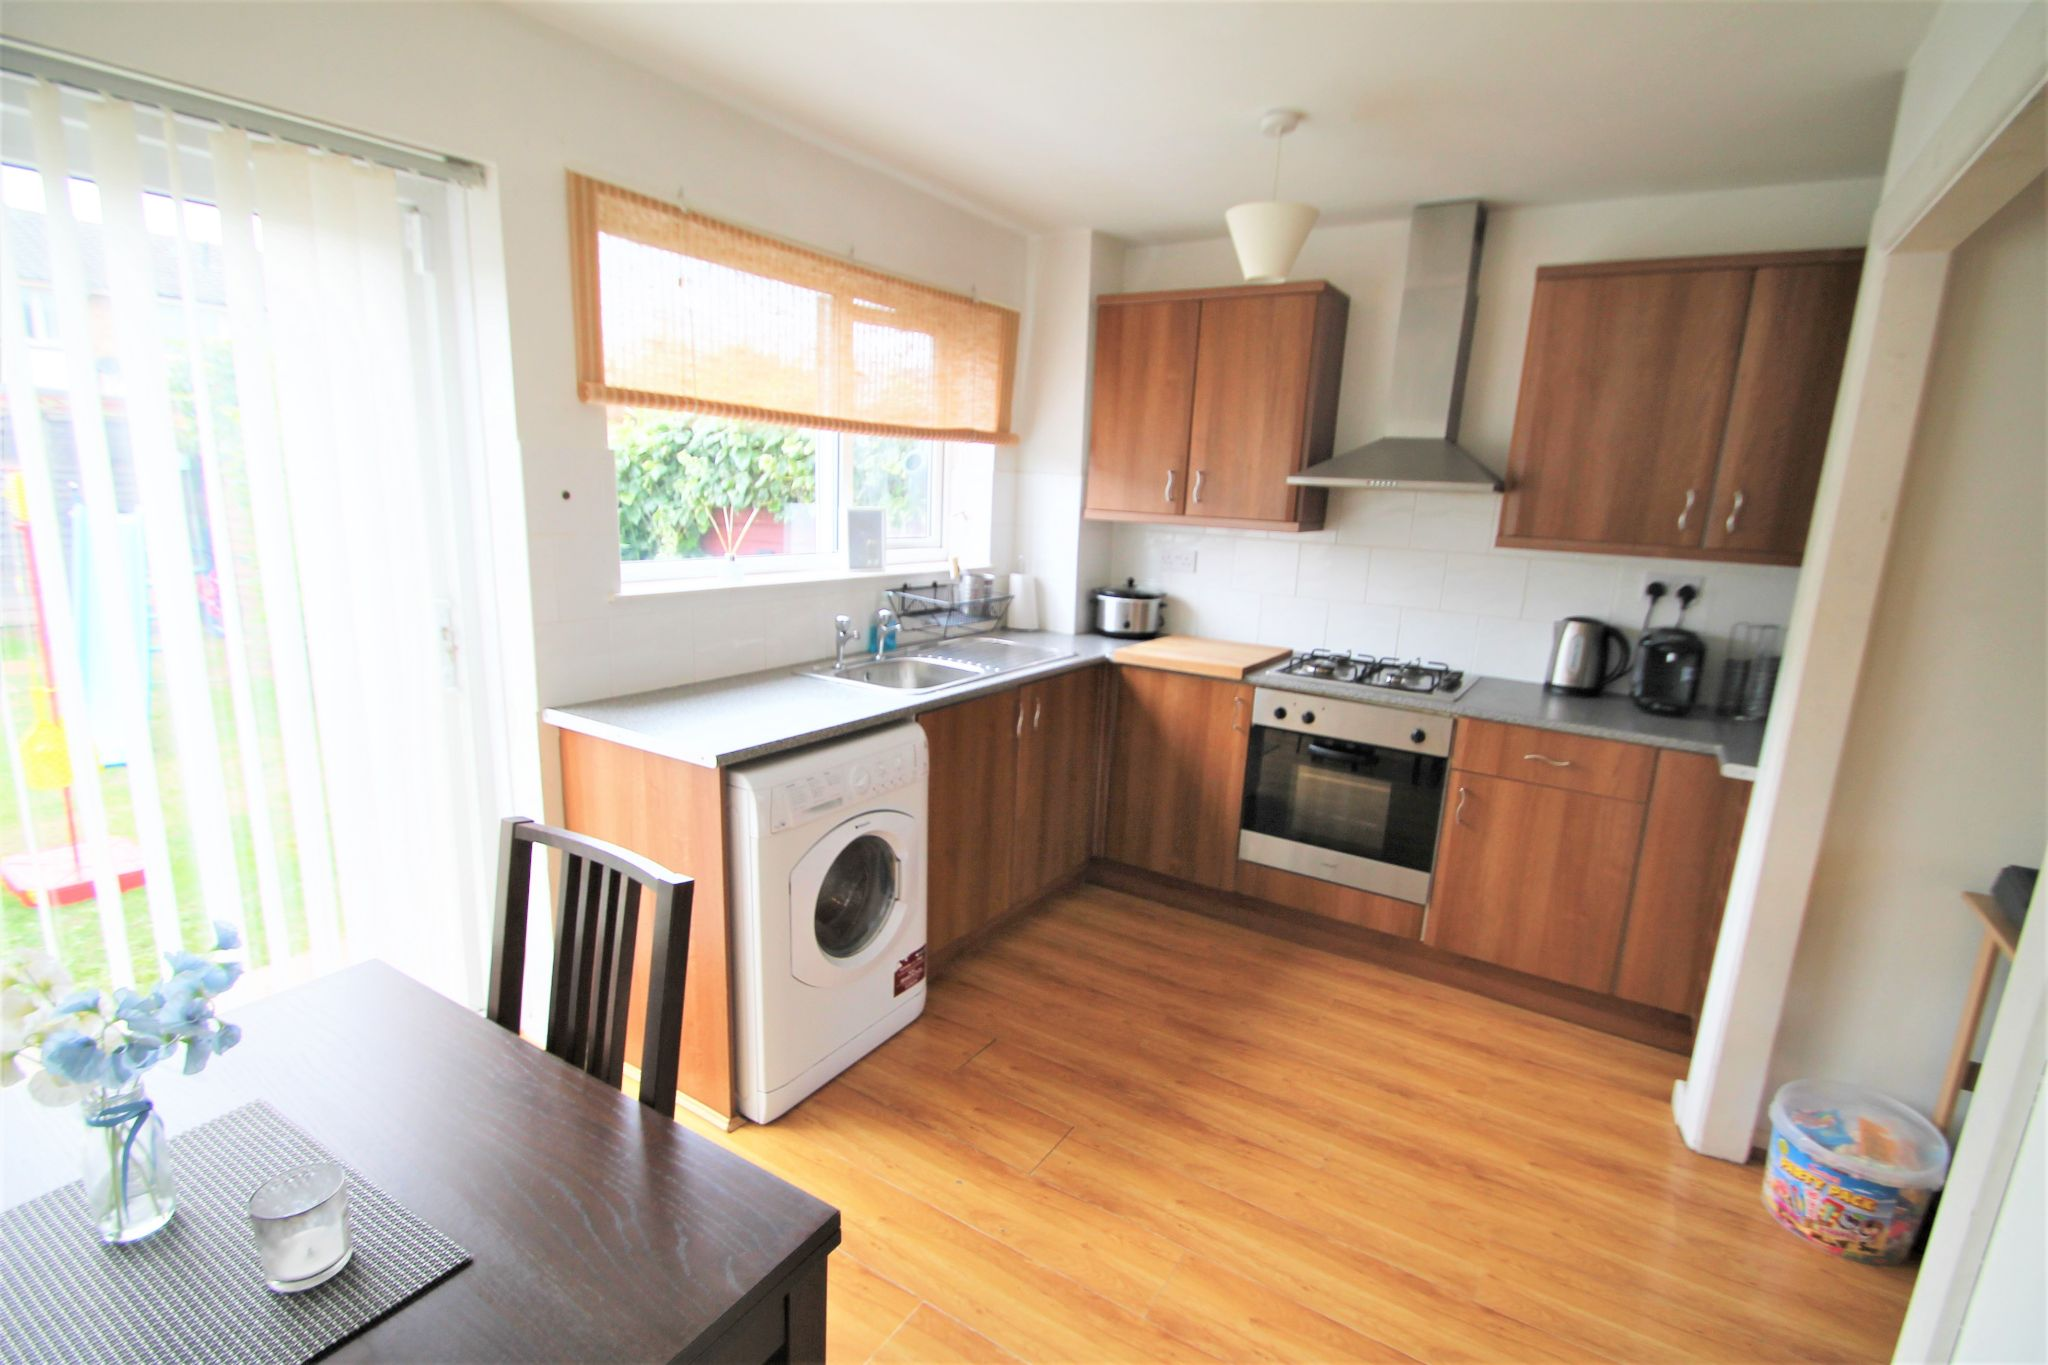 3 Bedroom Mid Terraced House For Sale - Kitchen/Diner